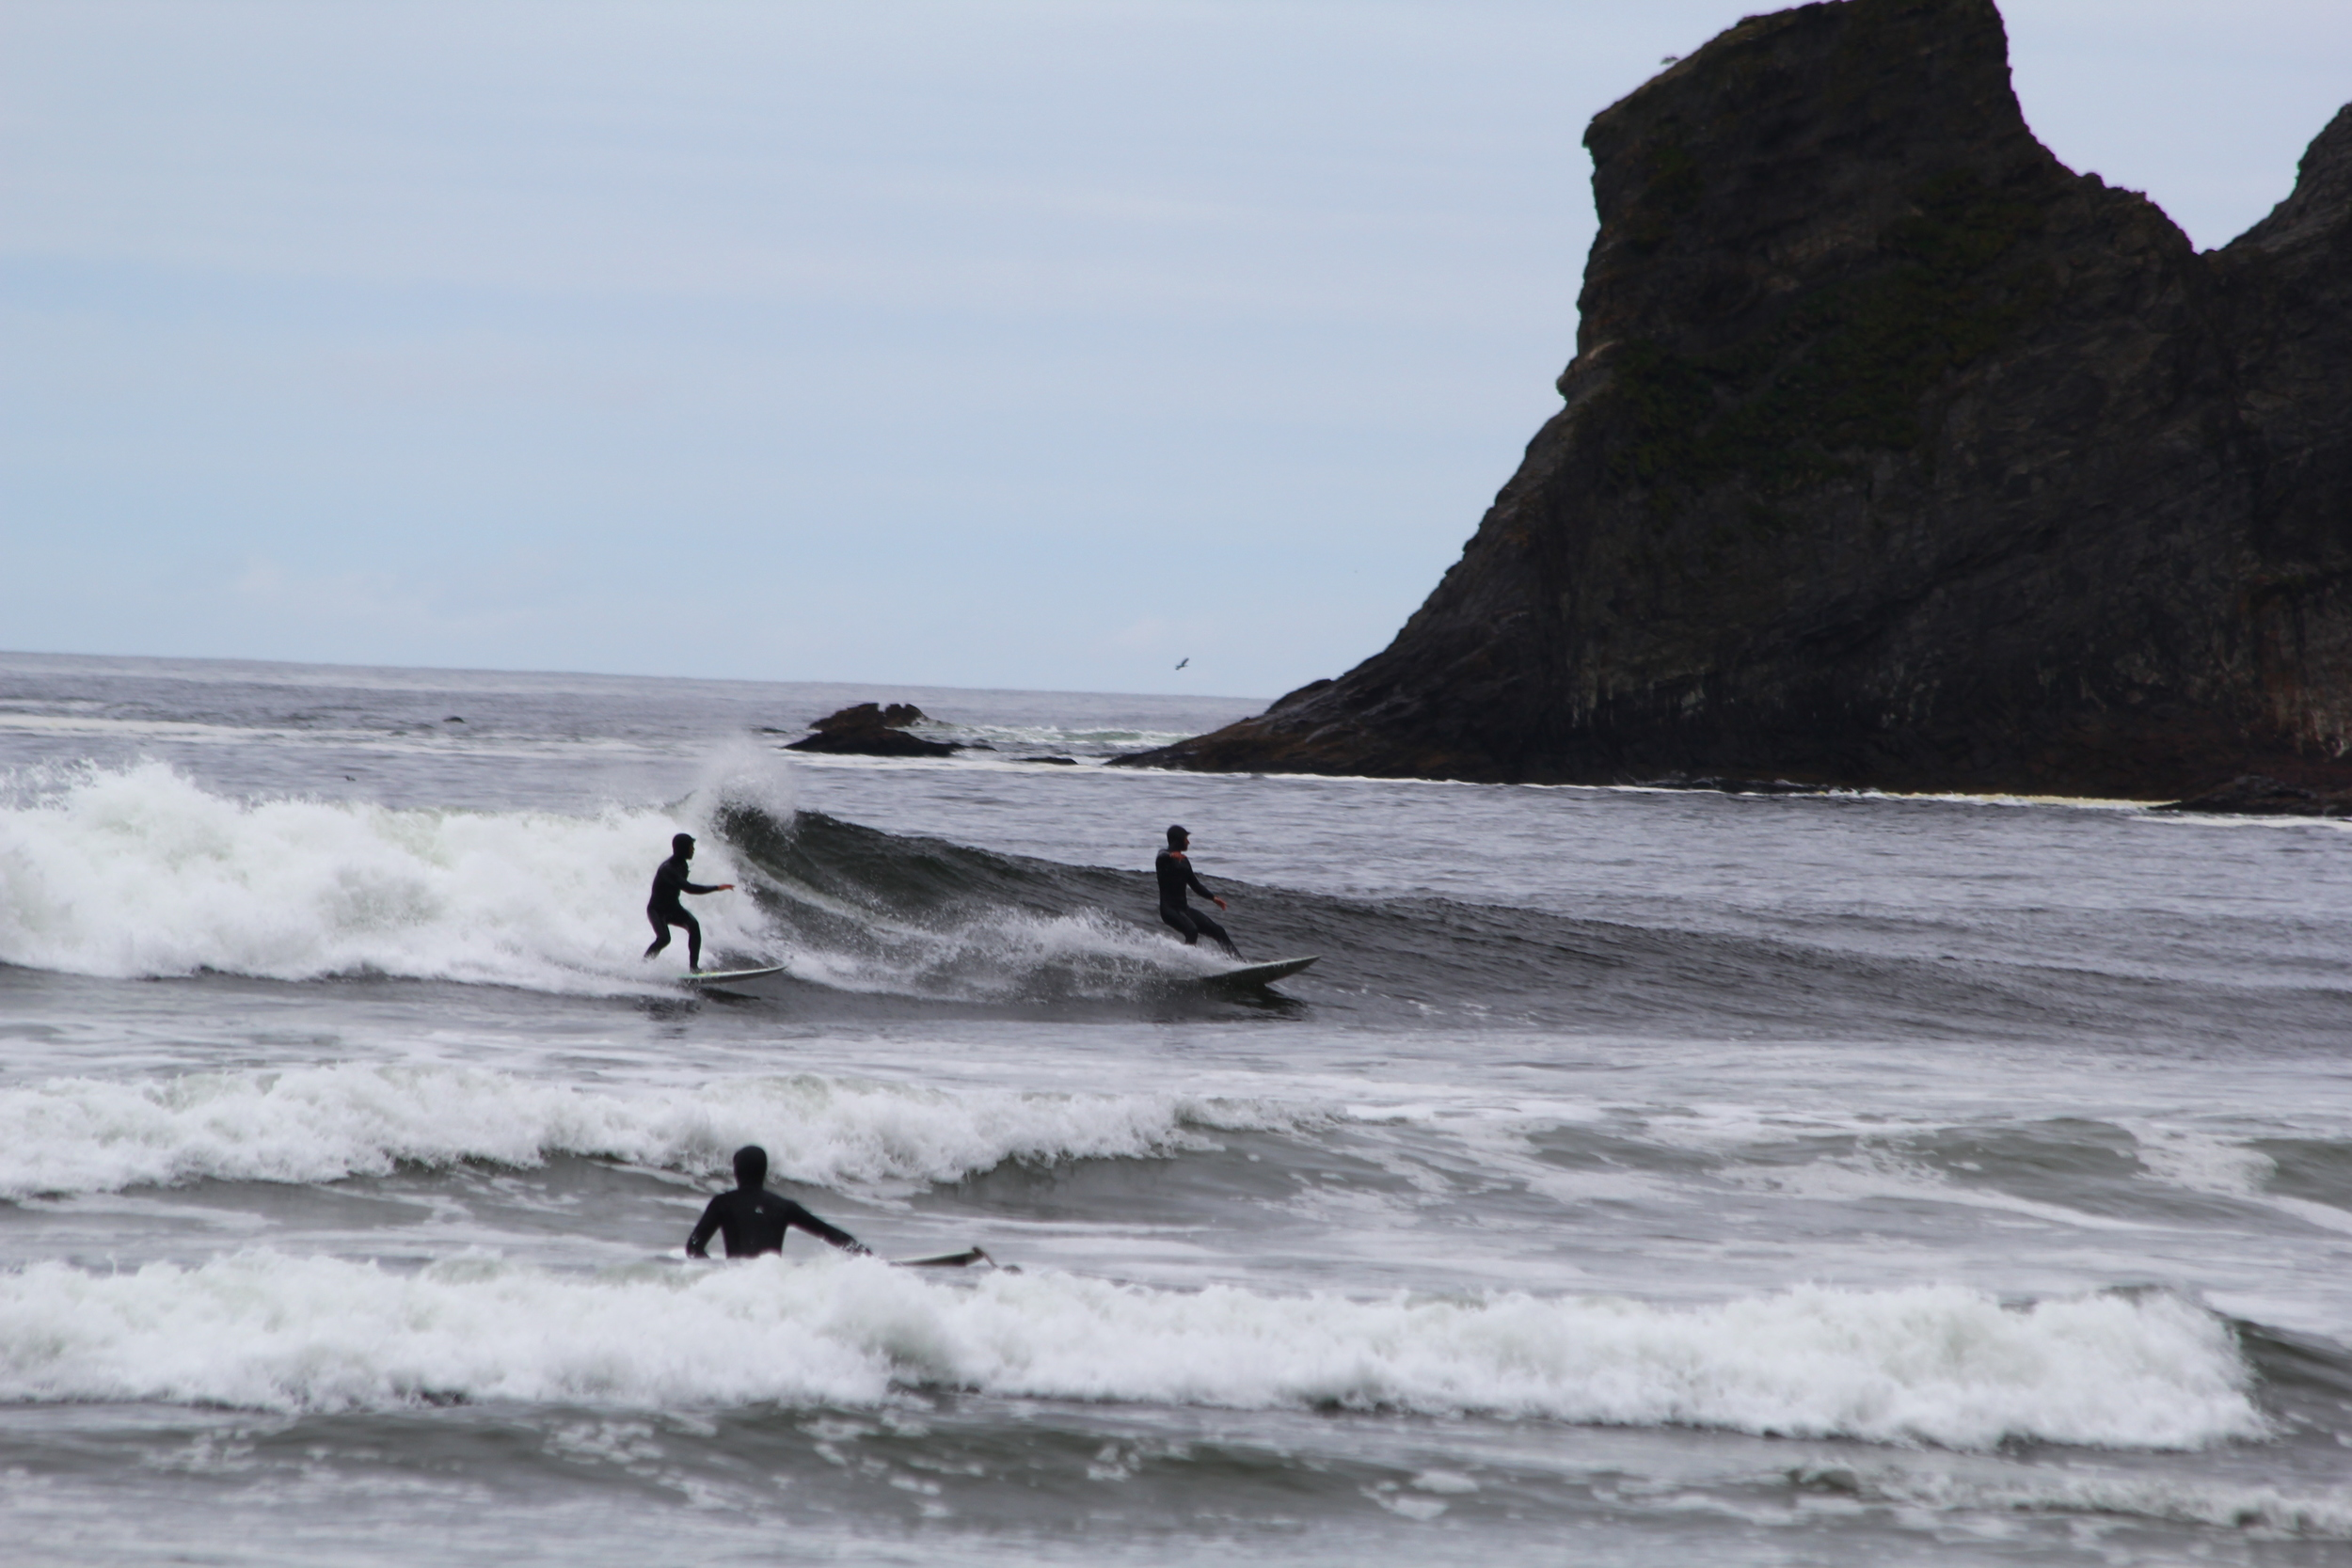 SURFING SHORT SANDS BEACH OREGON